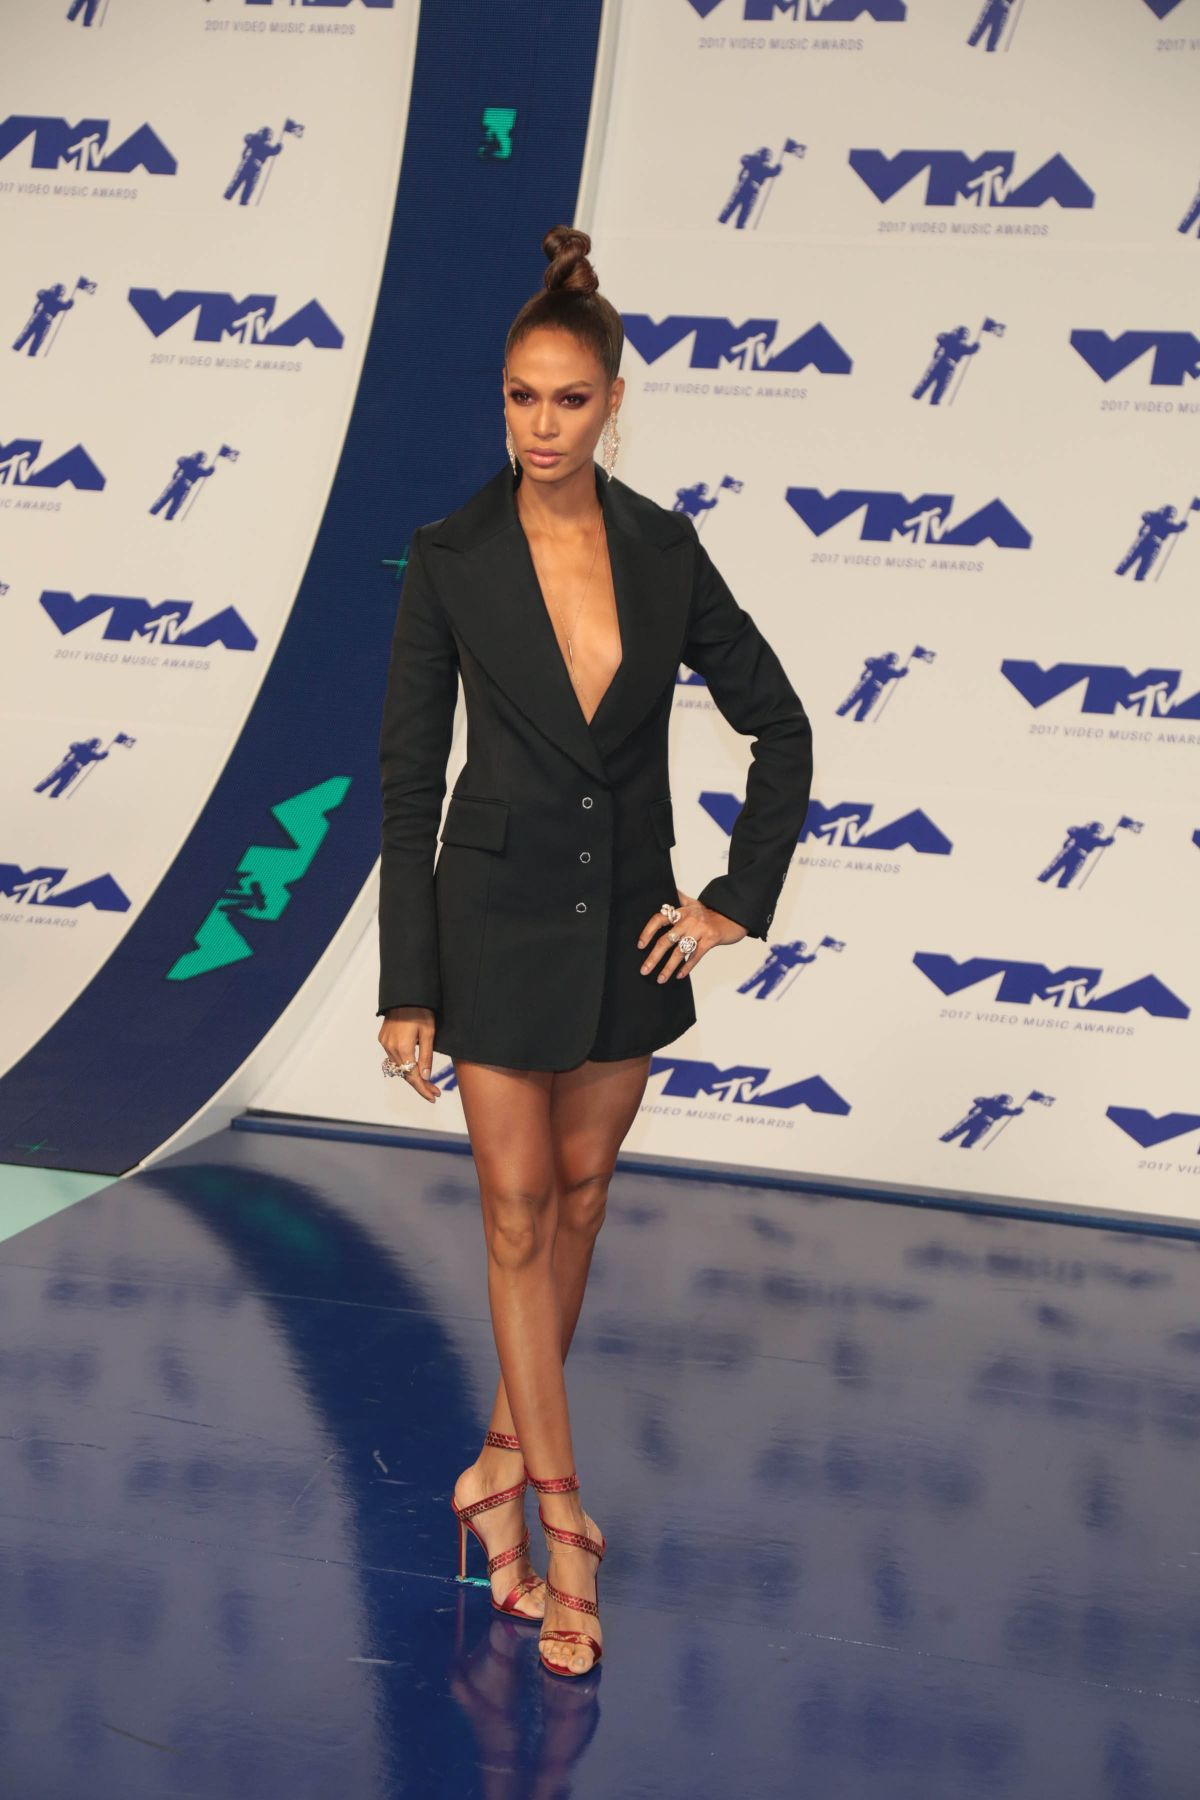 JOAN SMALLS at 2017 MTV Video Music Awards in Los Angeles 08/27/2017